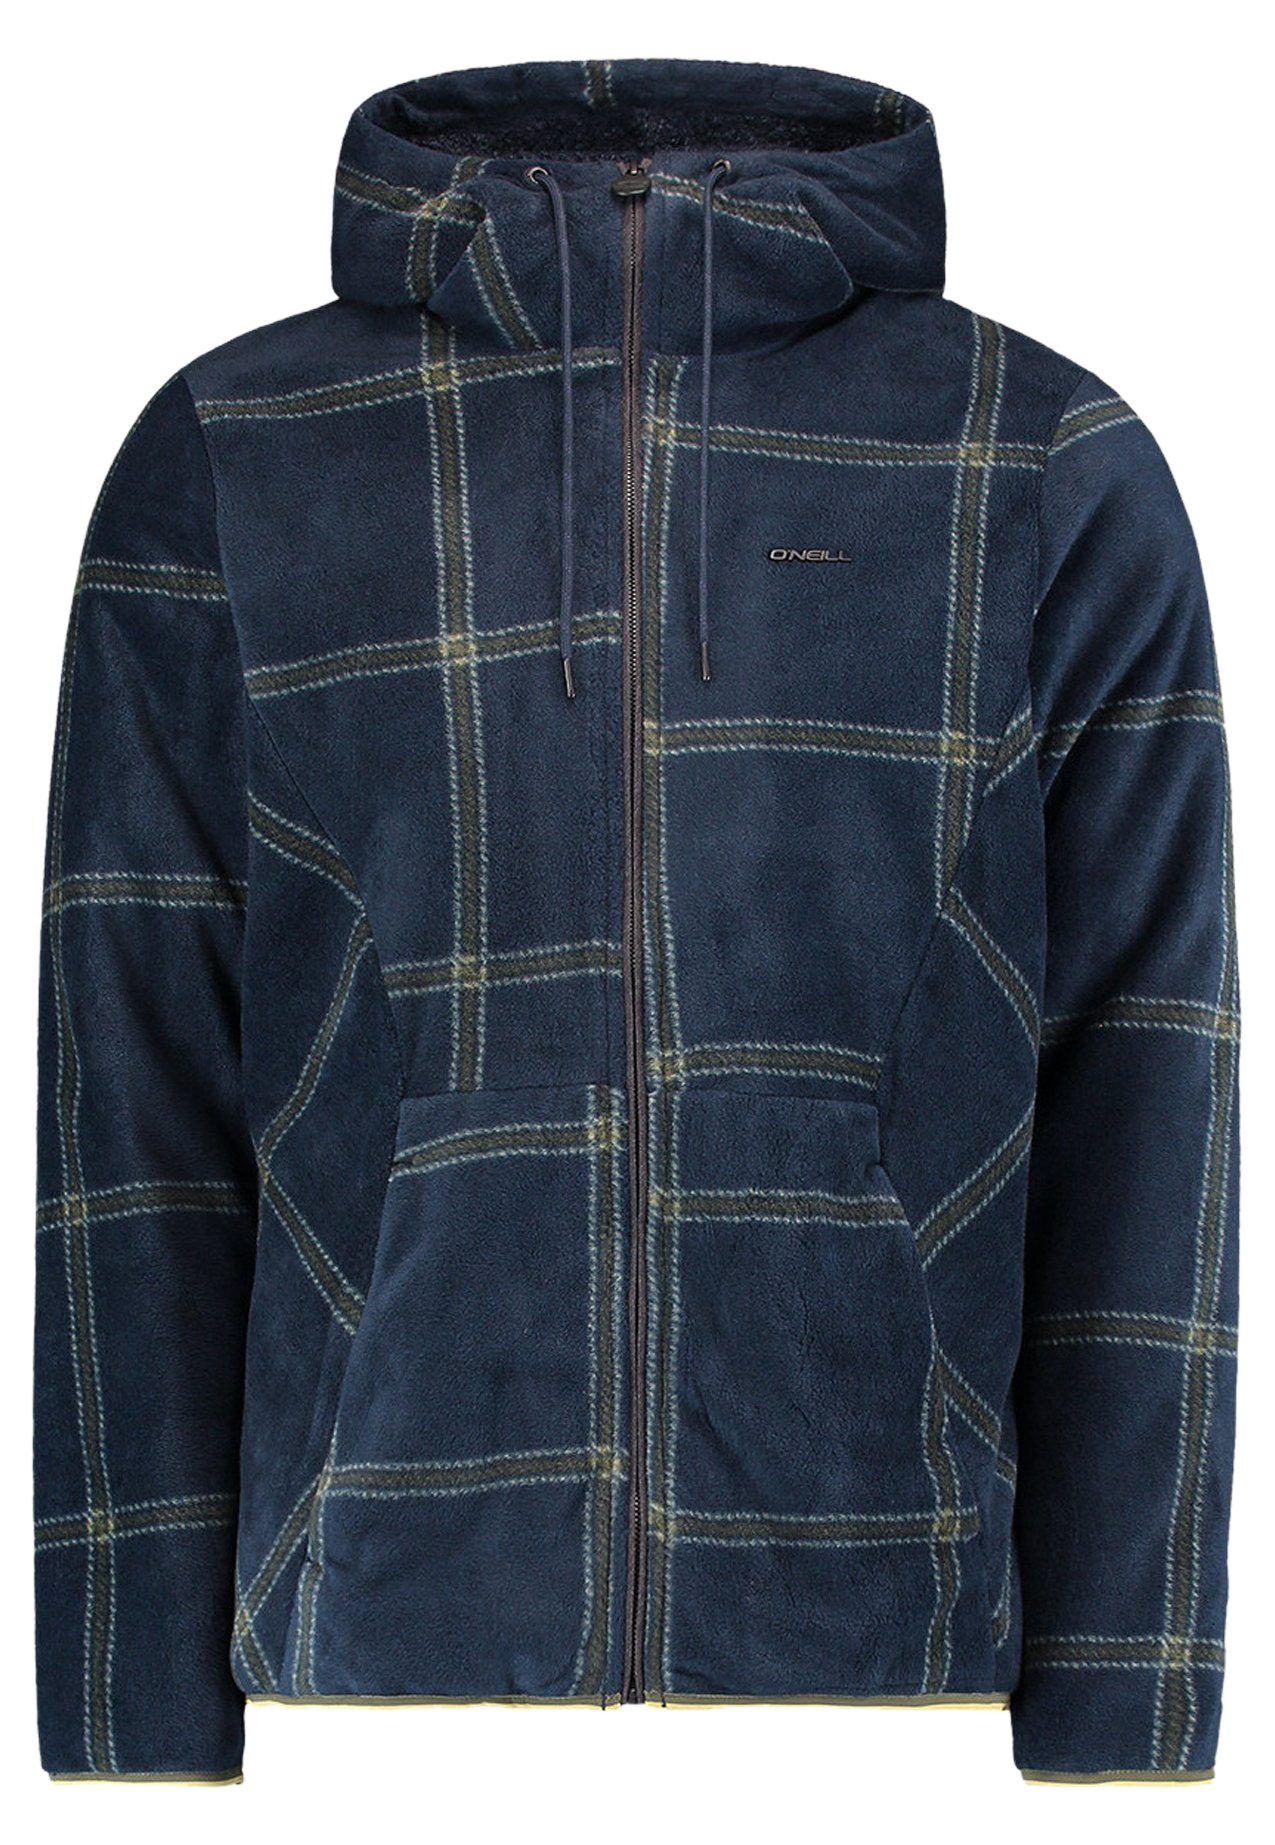 O'neill Strickjacke - Blue Aop W/ Green